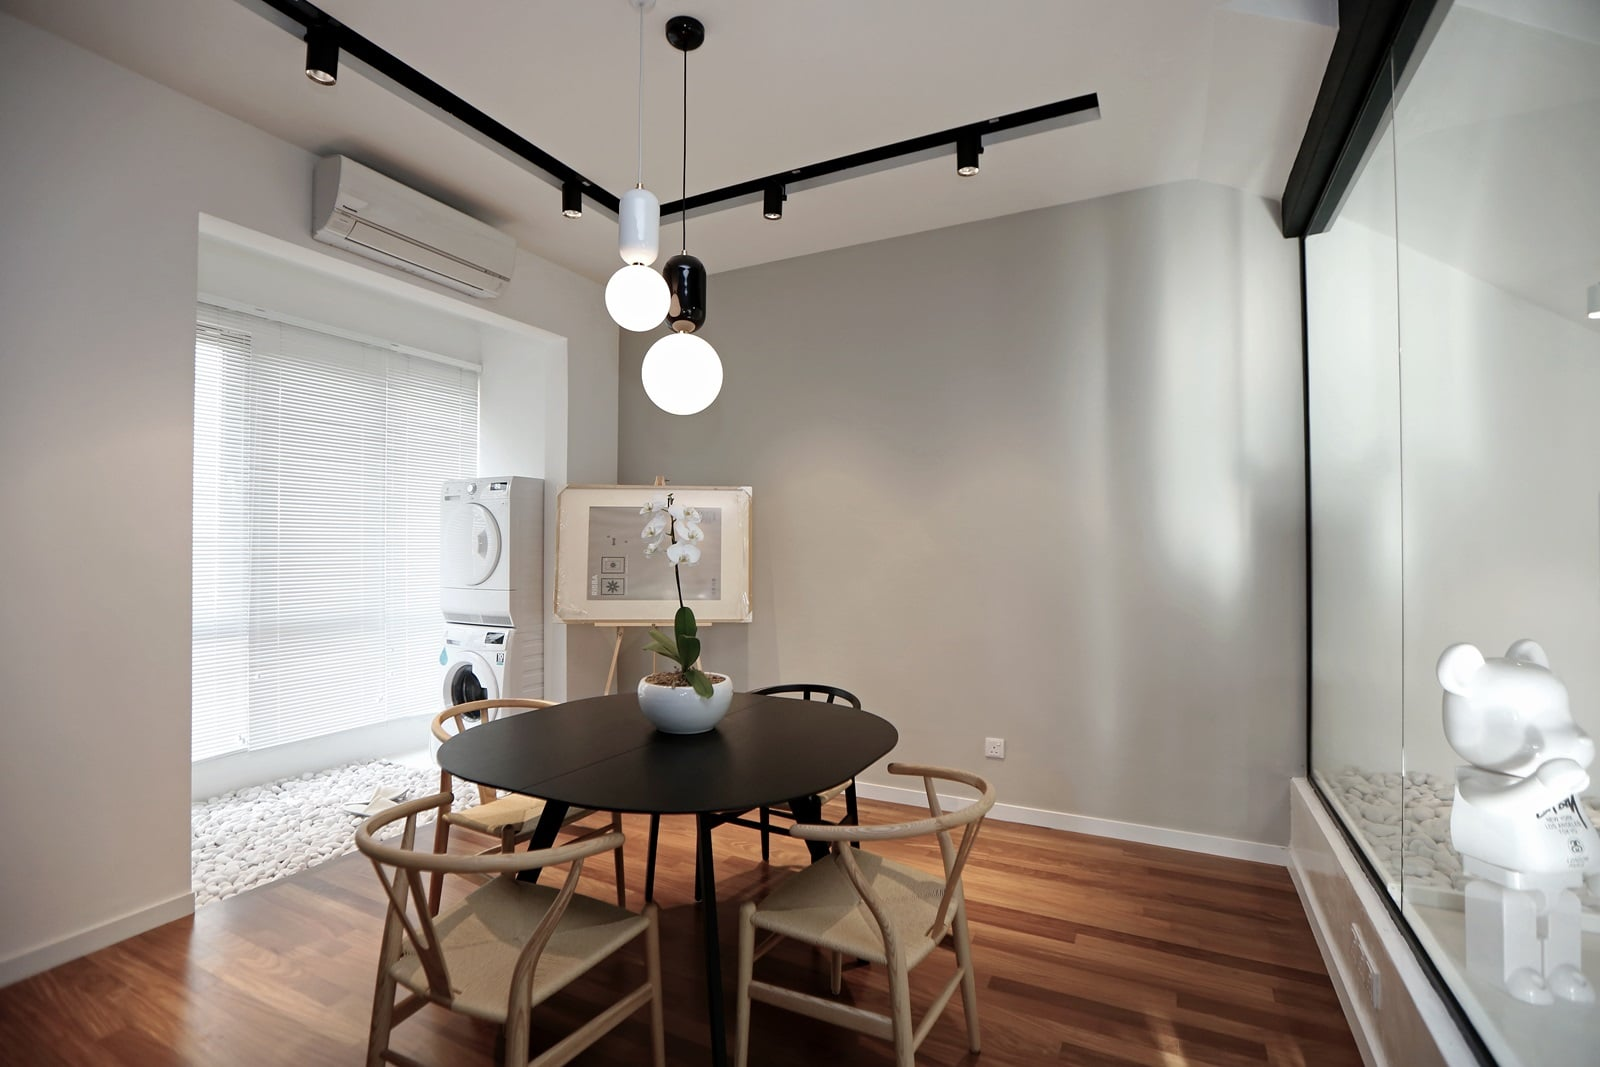 Townhouse dining area designed to look brighter and subtly hiding its darker design elements.